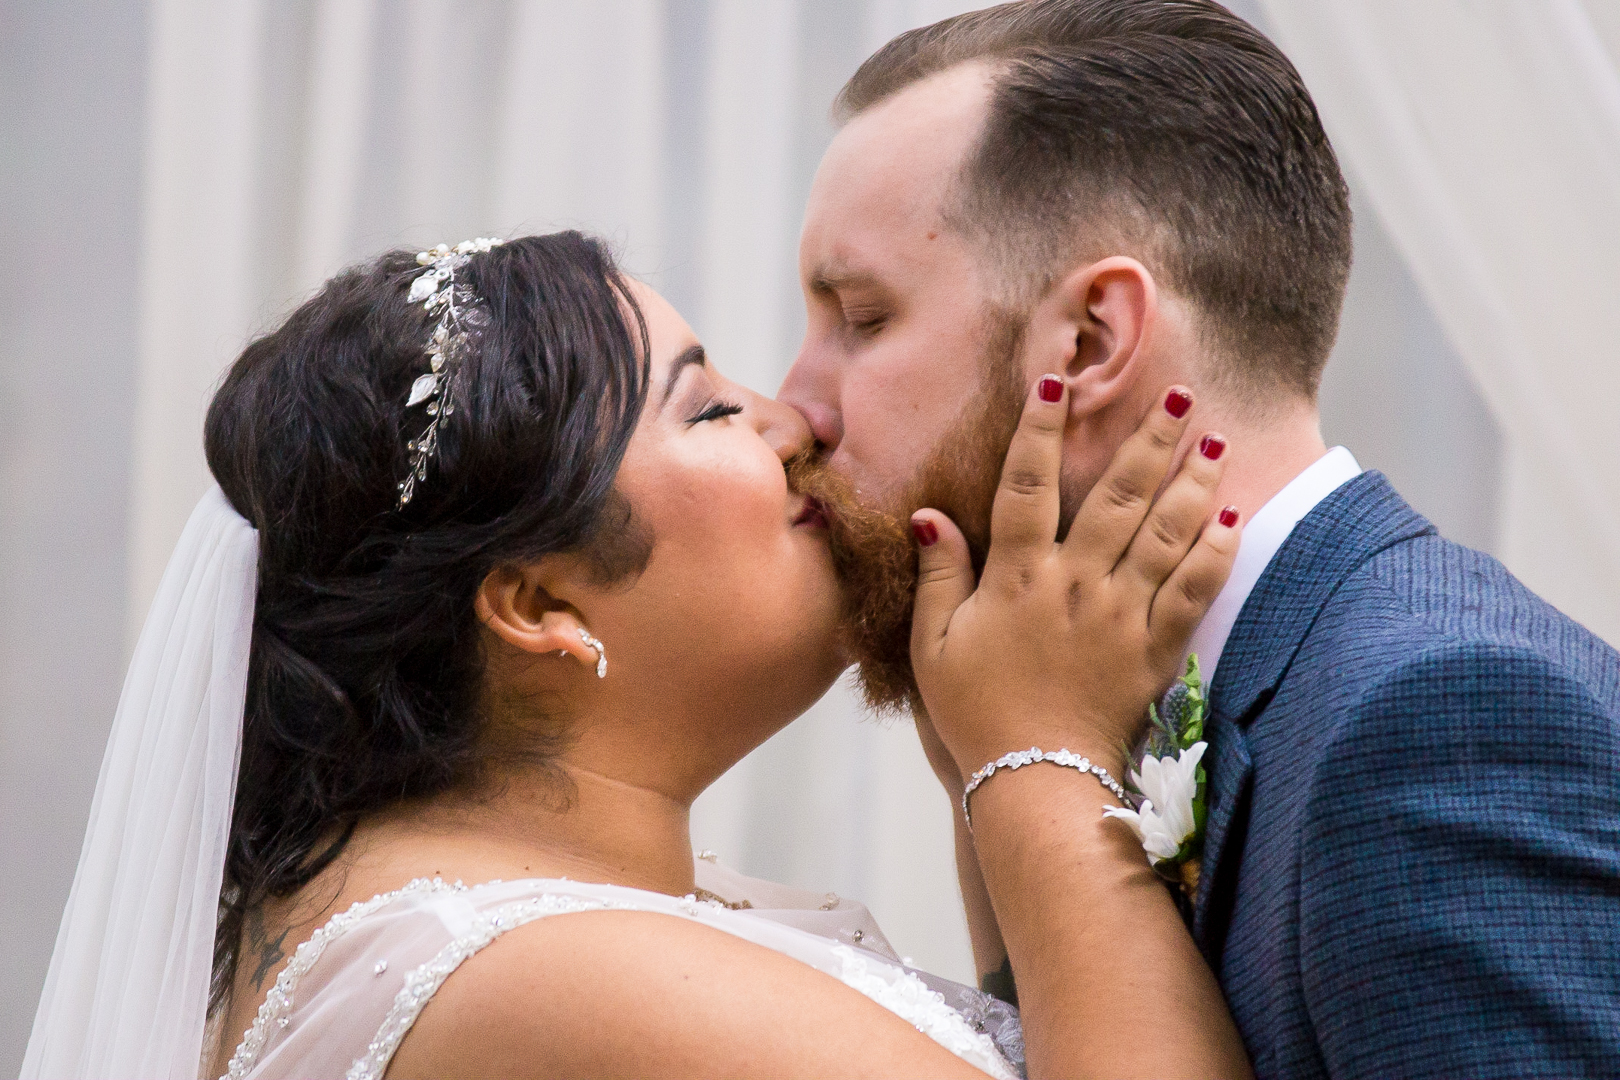 The Bride and Groom's first kiss.